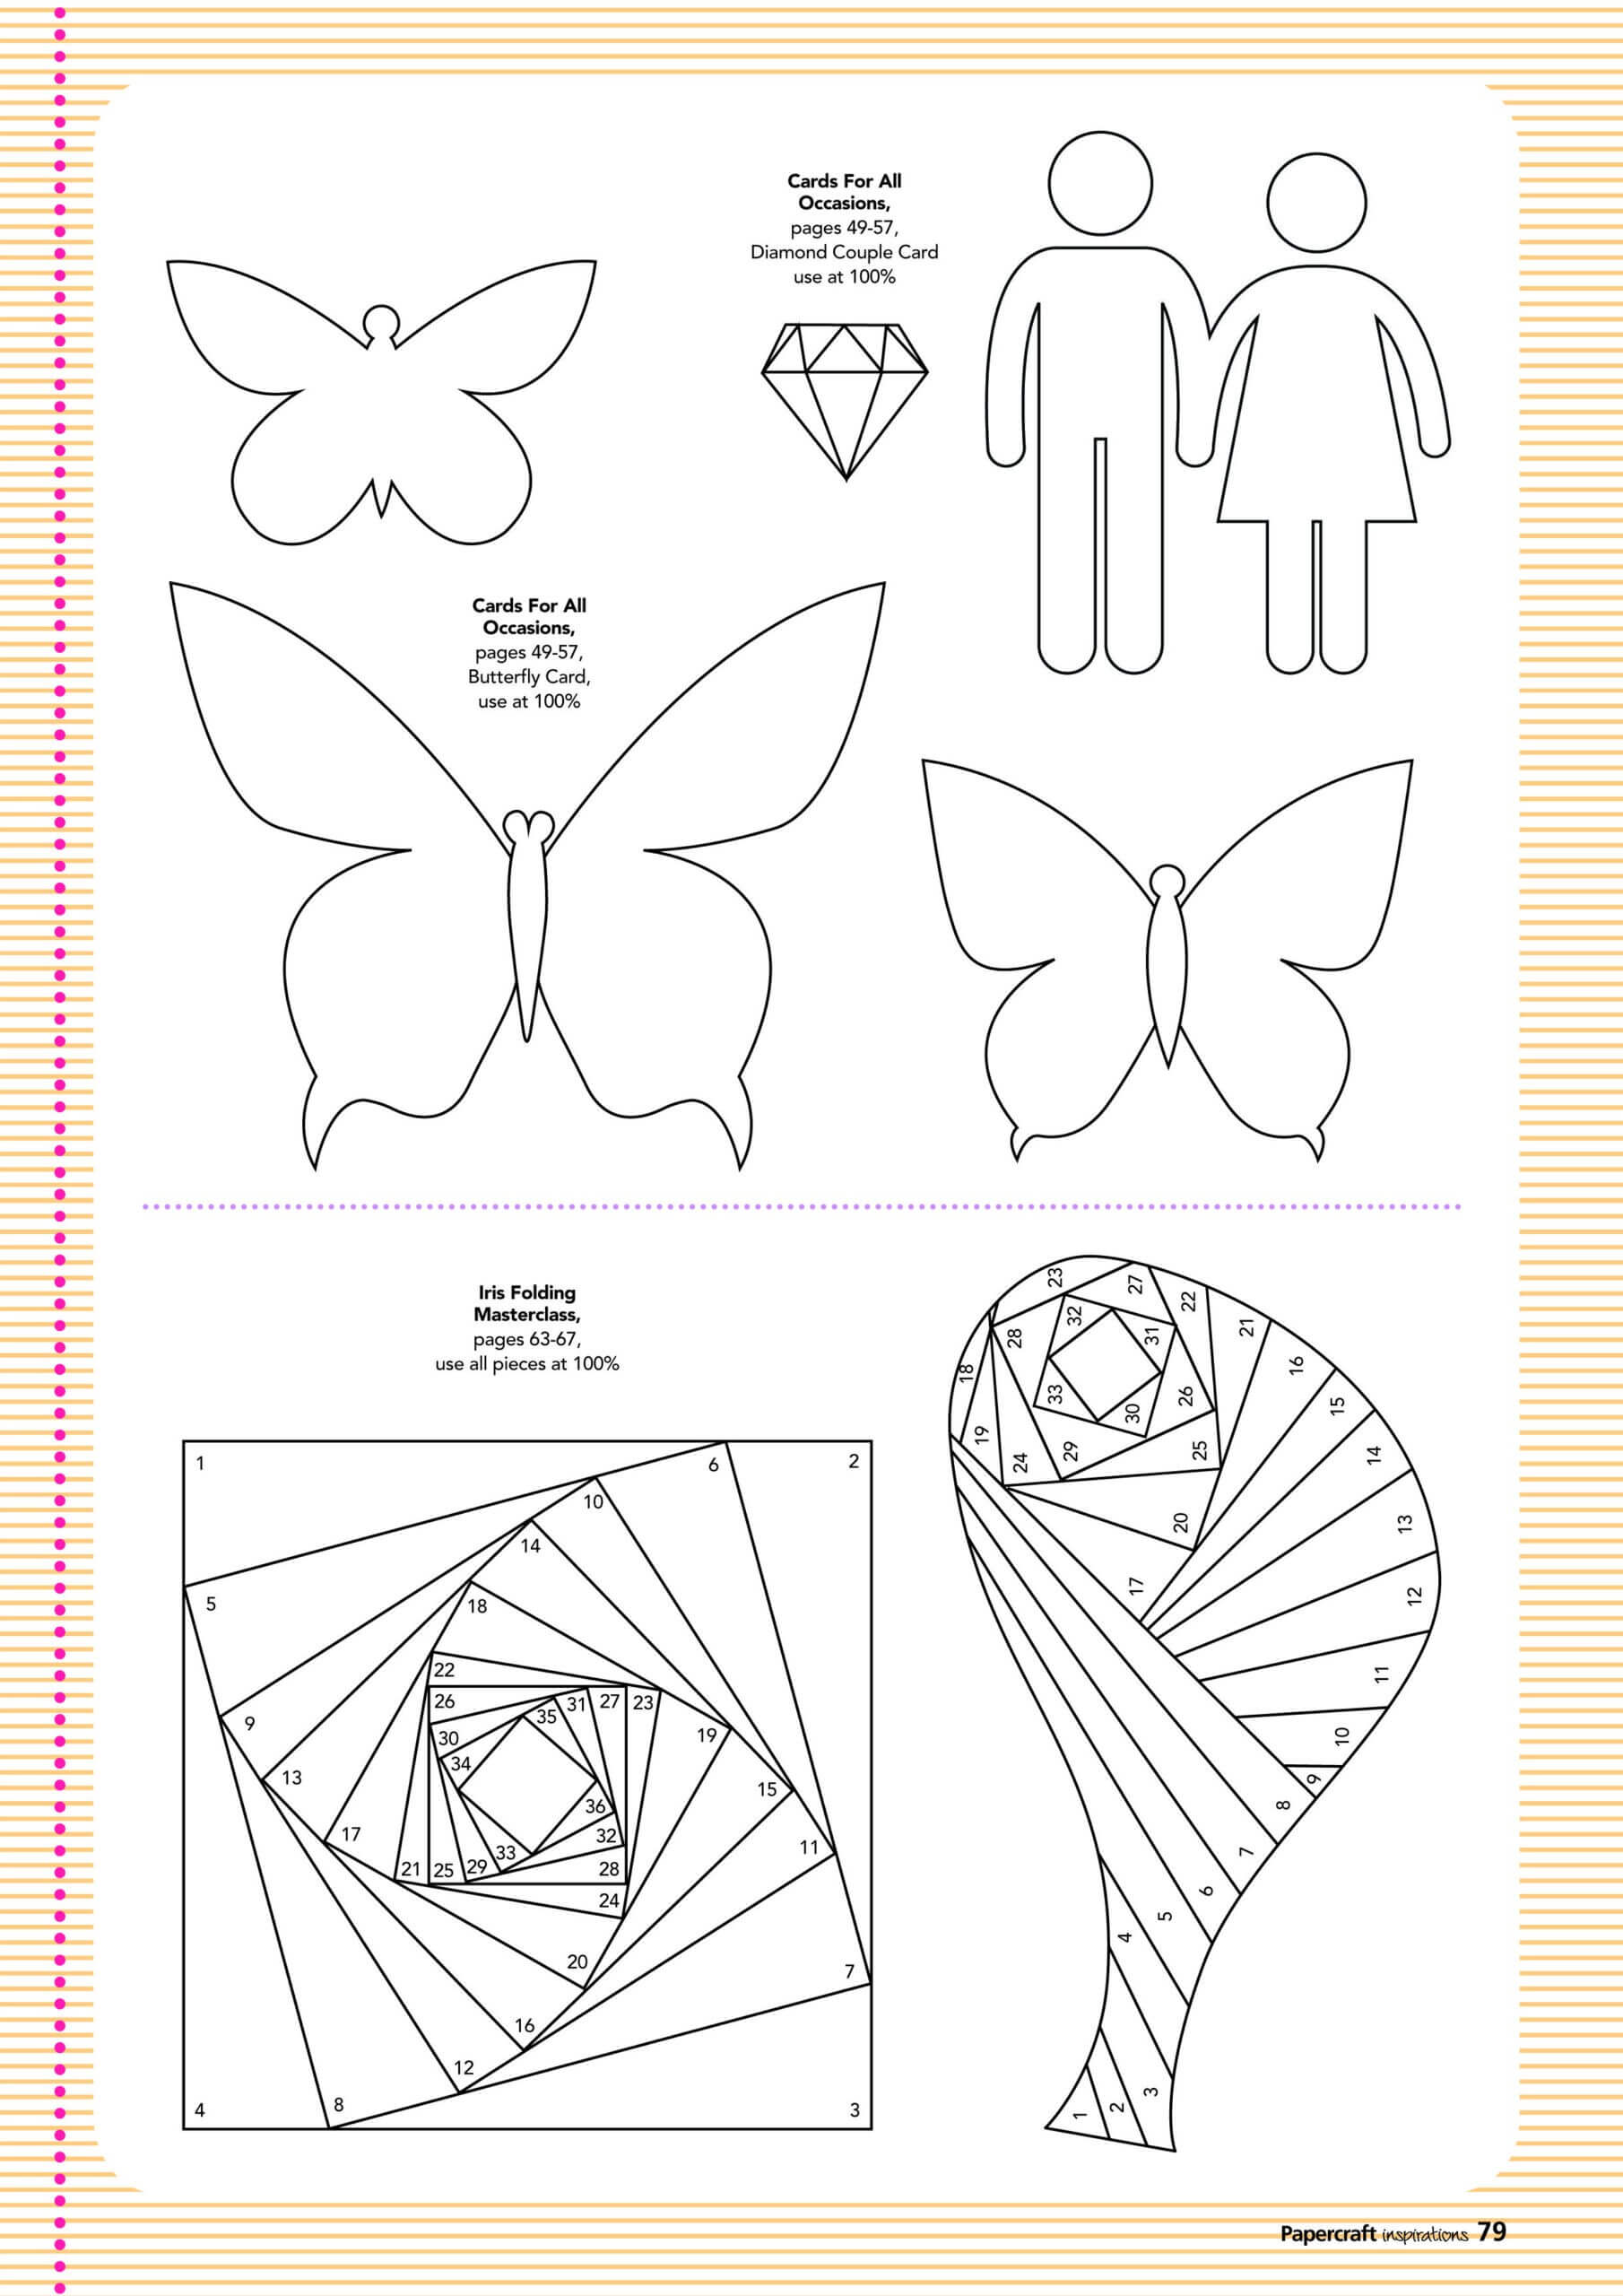 Free Card Making Templates From Papercraft Inspirations 123 Pertaining To Card Folding Templates Free